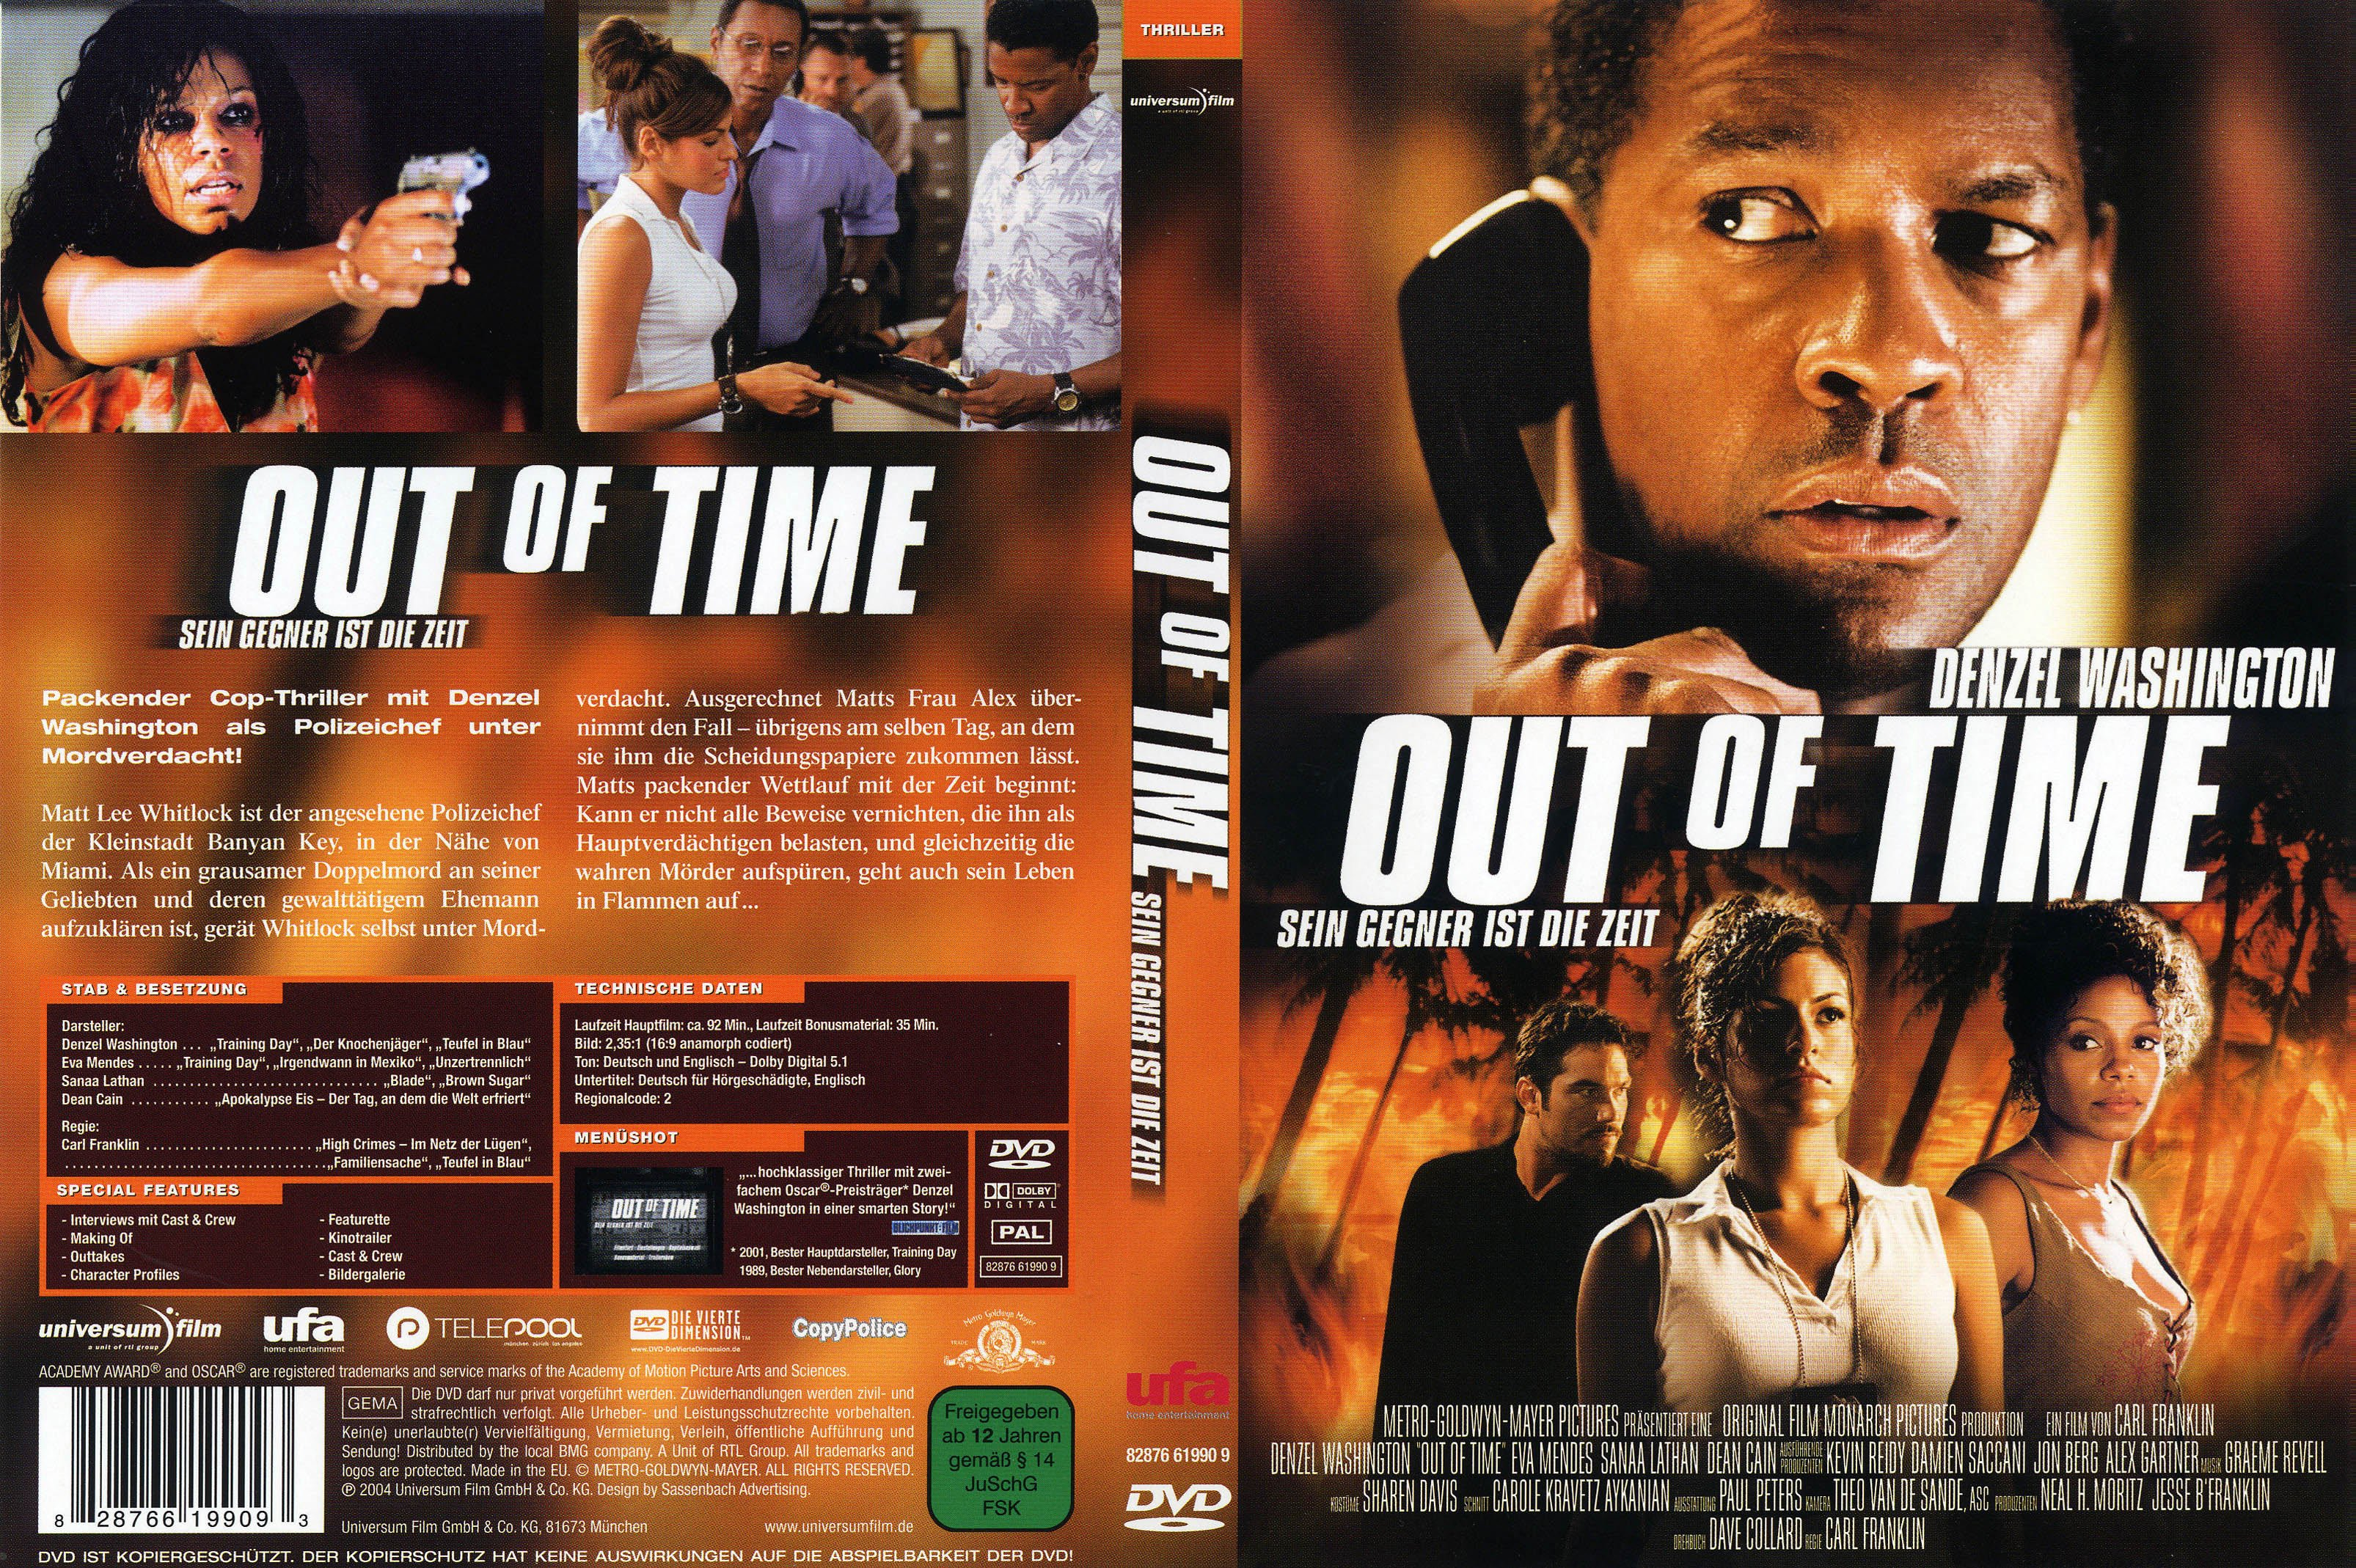 out of time - photo #24